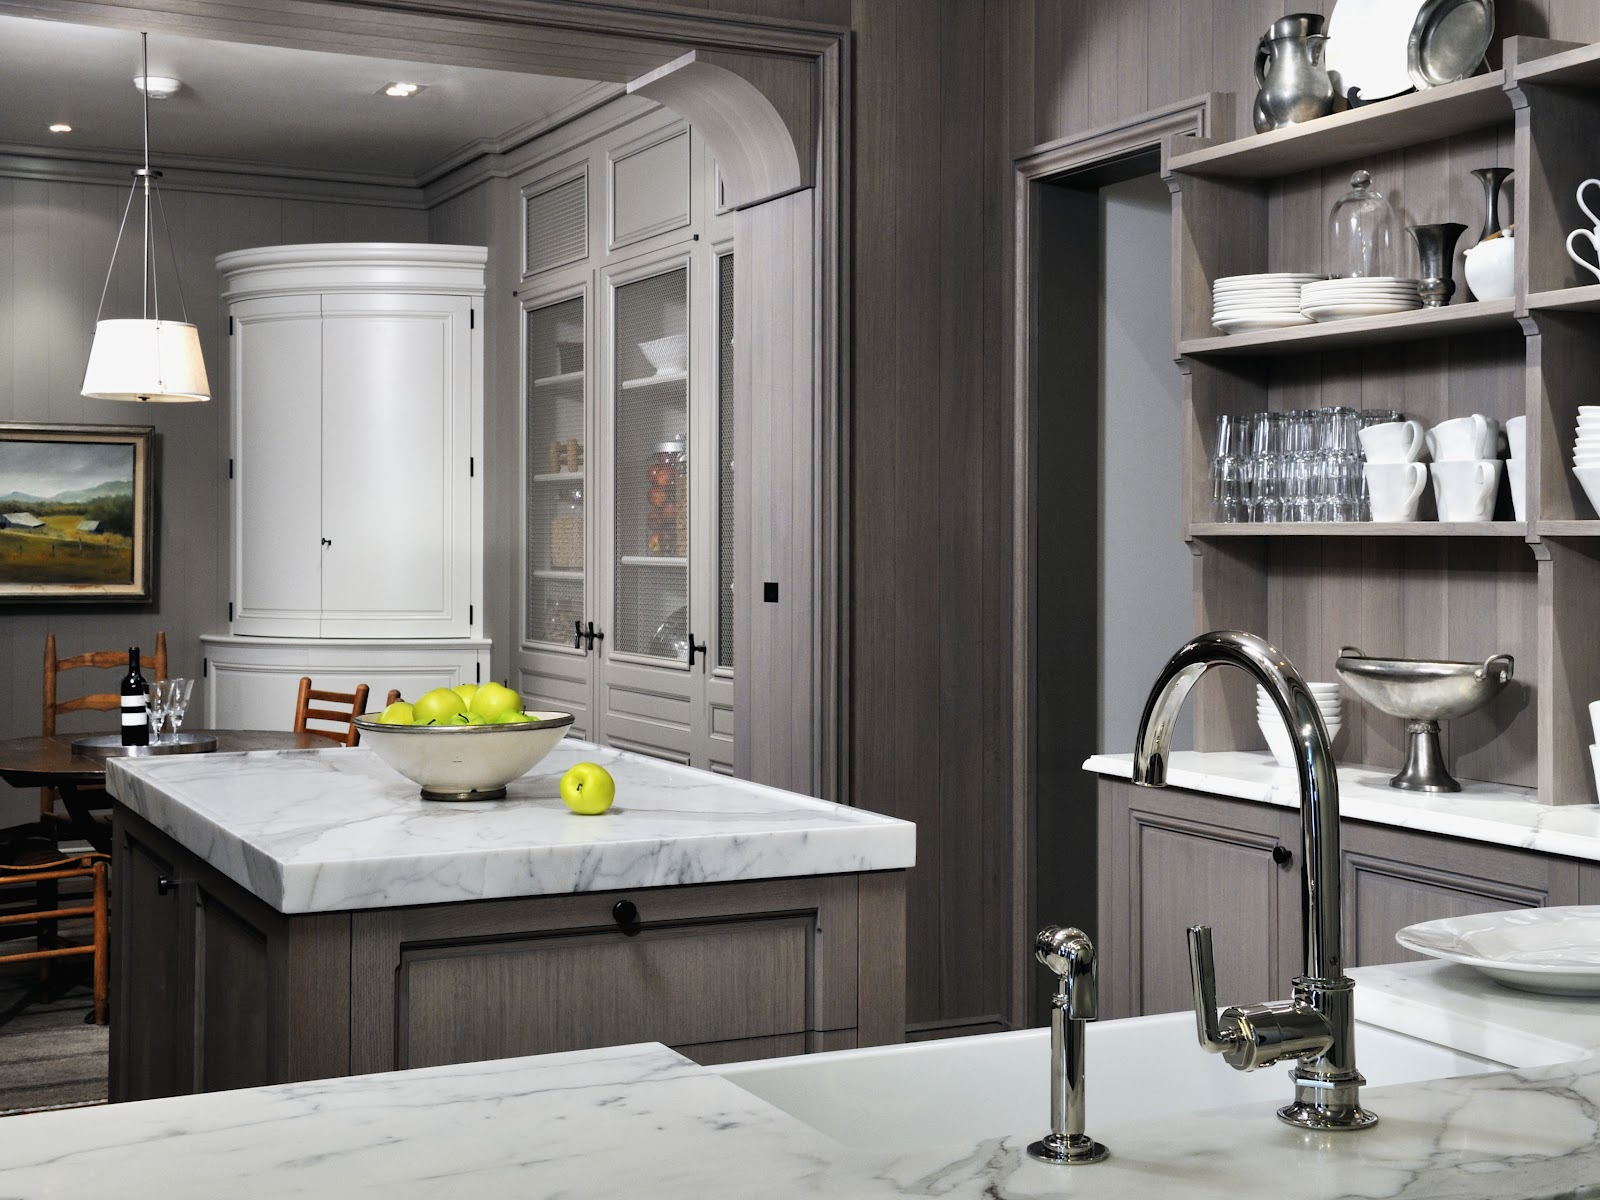 Elegant Vintage Grey Painting Kitchen Countertops Ideas (Image 6 of 10)